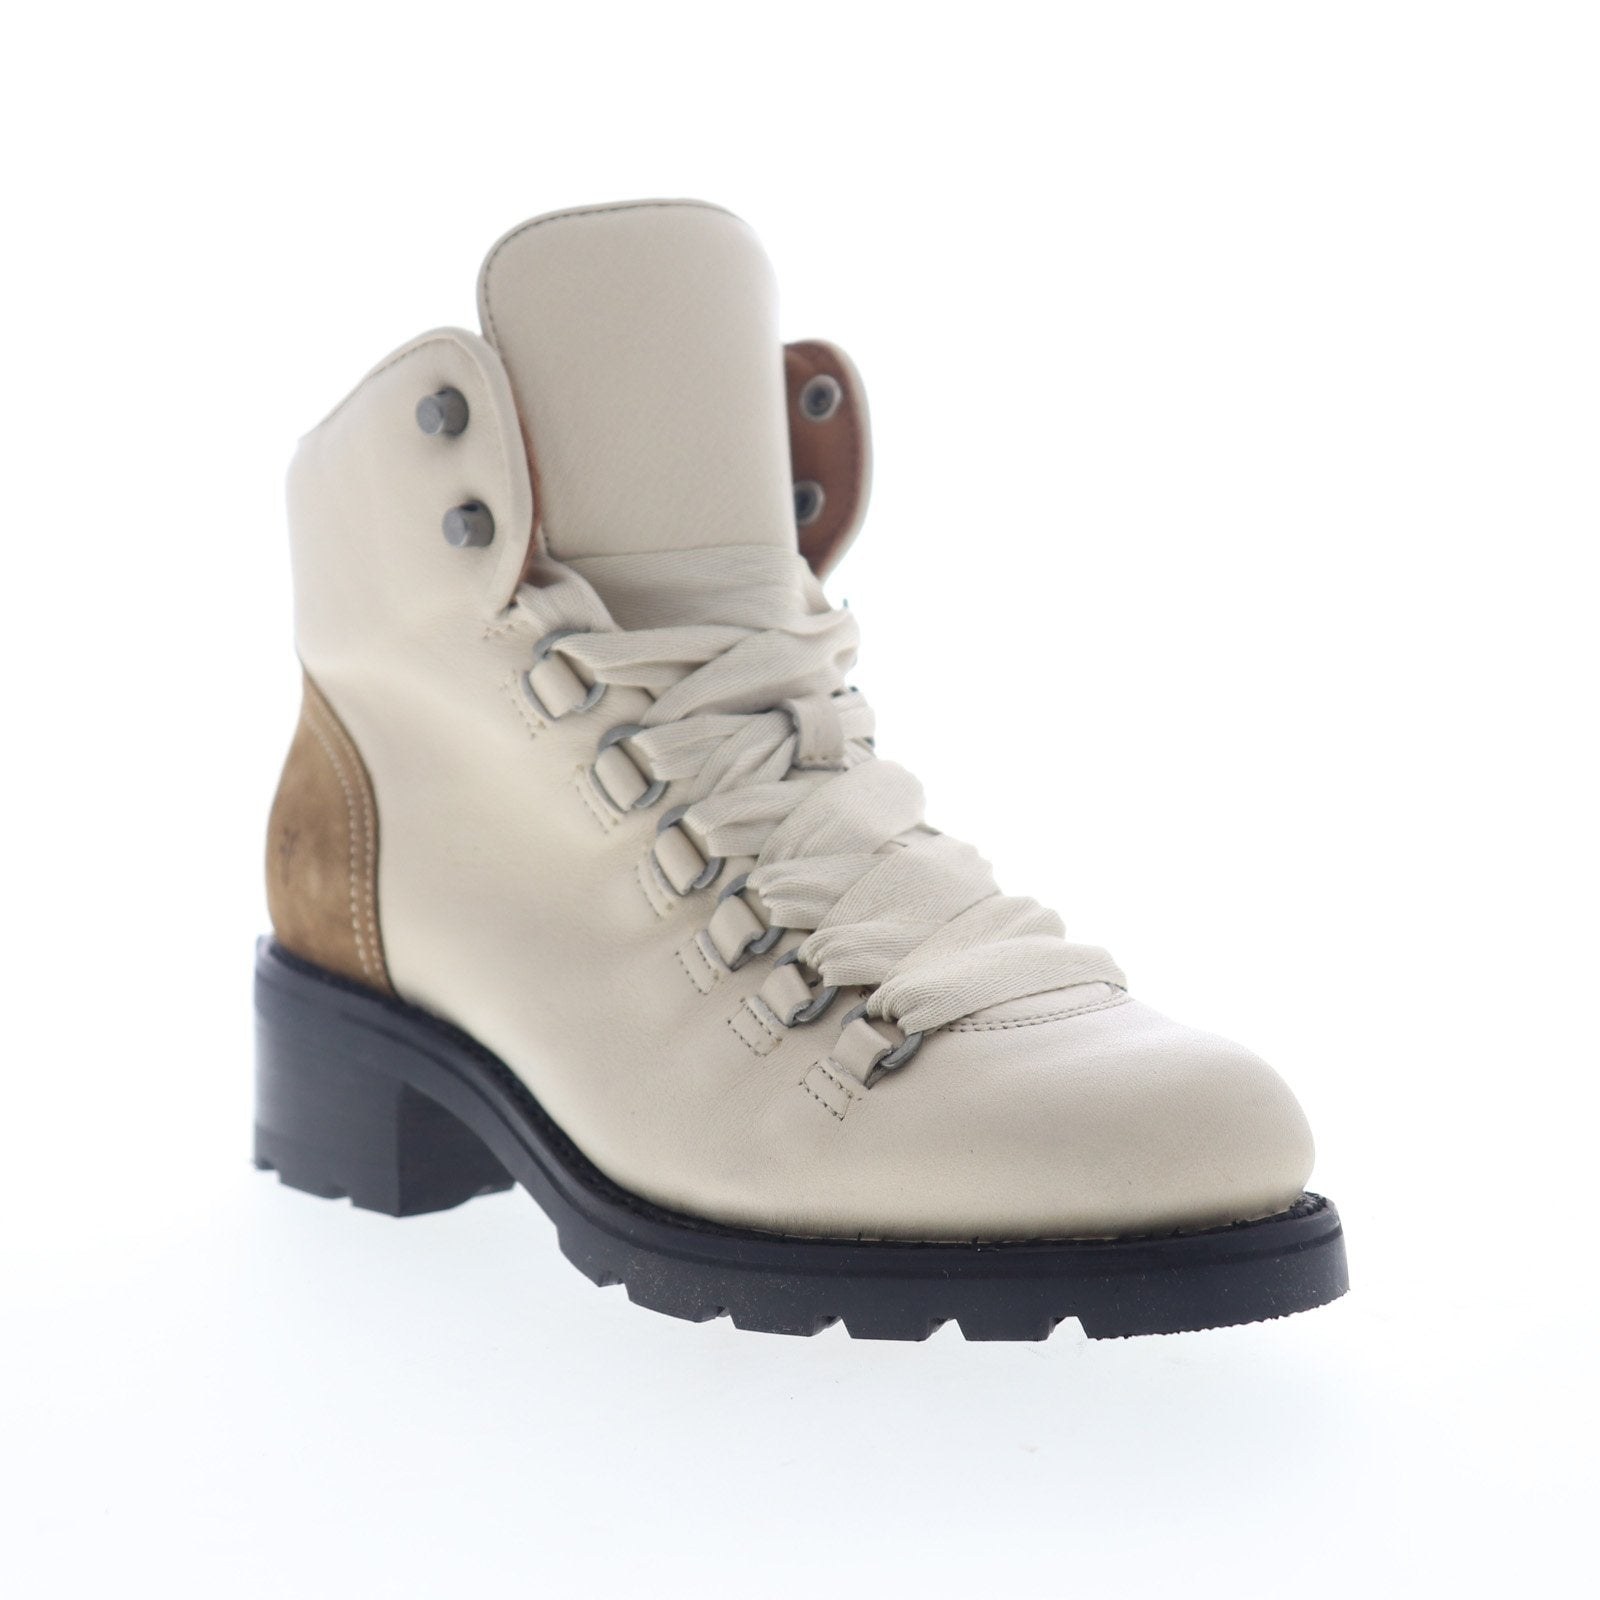 Frye Alta Hiker 70424 Womens White Leather Lace Up Hiker Boots Shoes Ruze Shoes